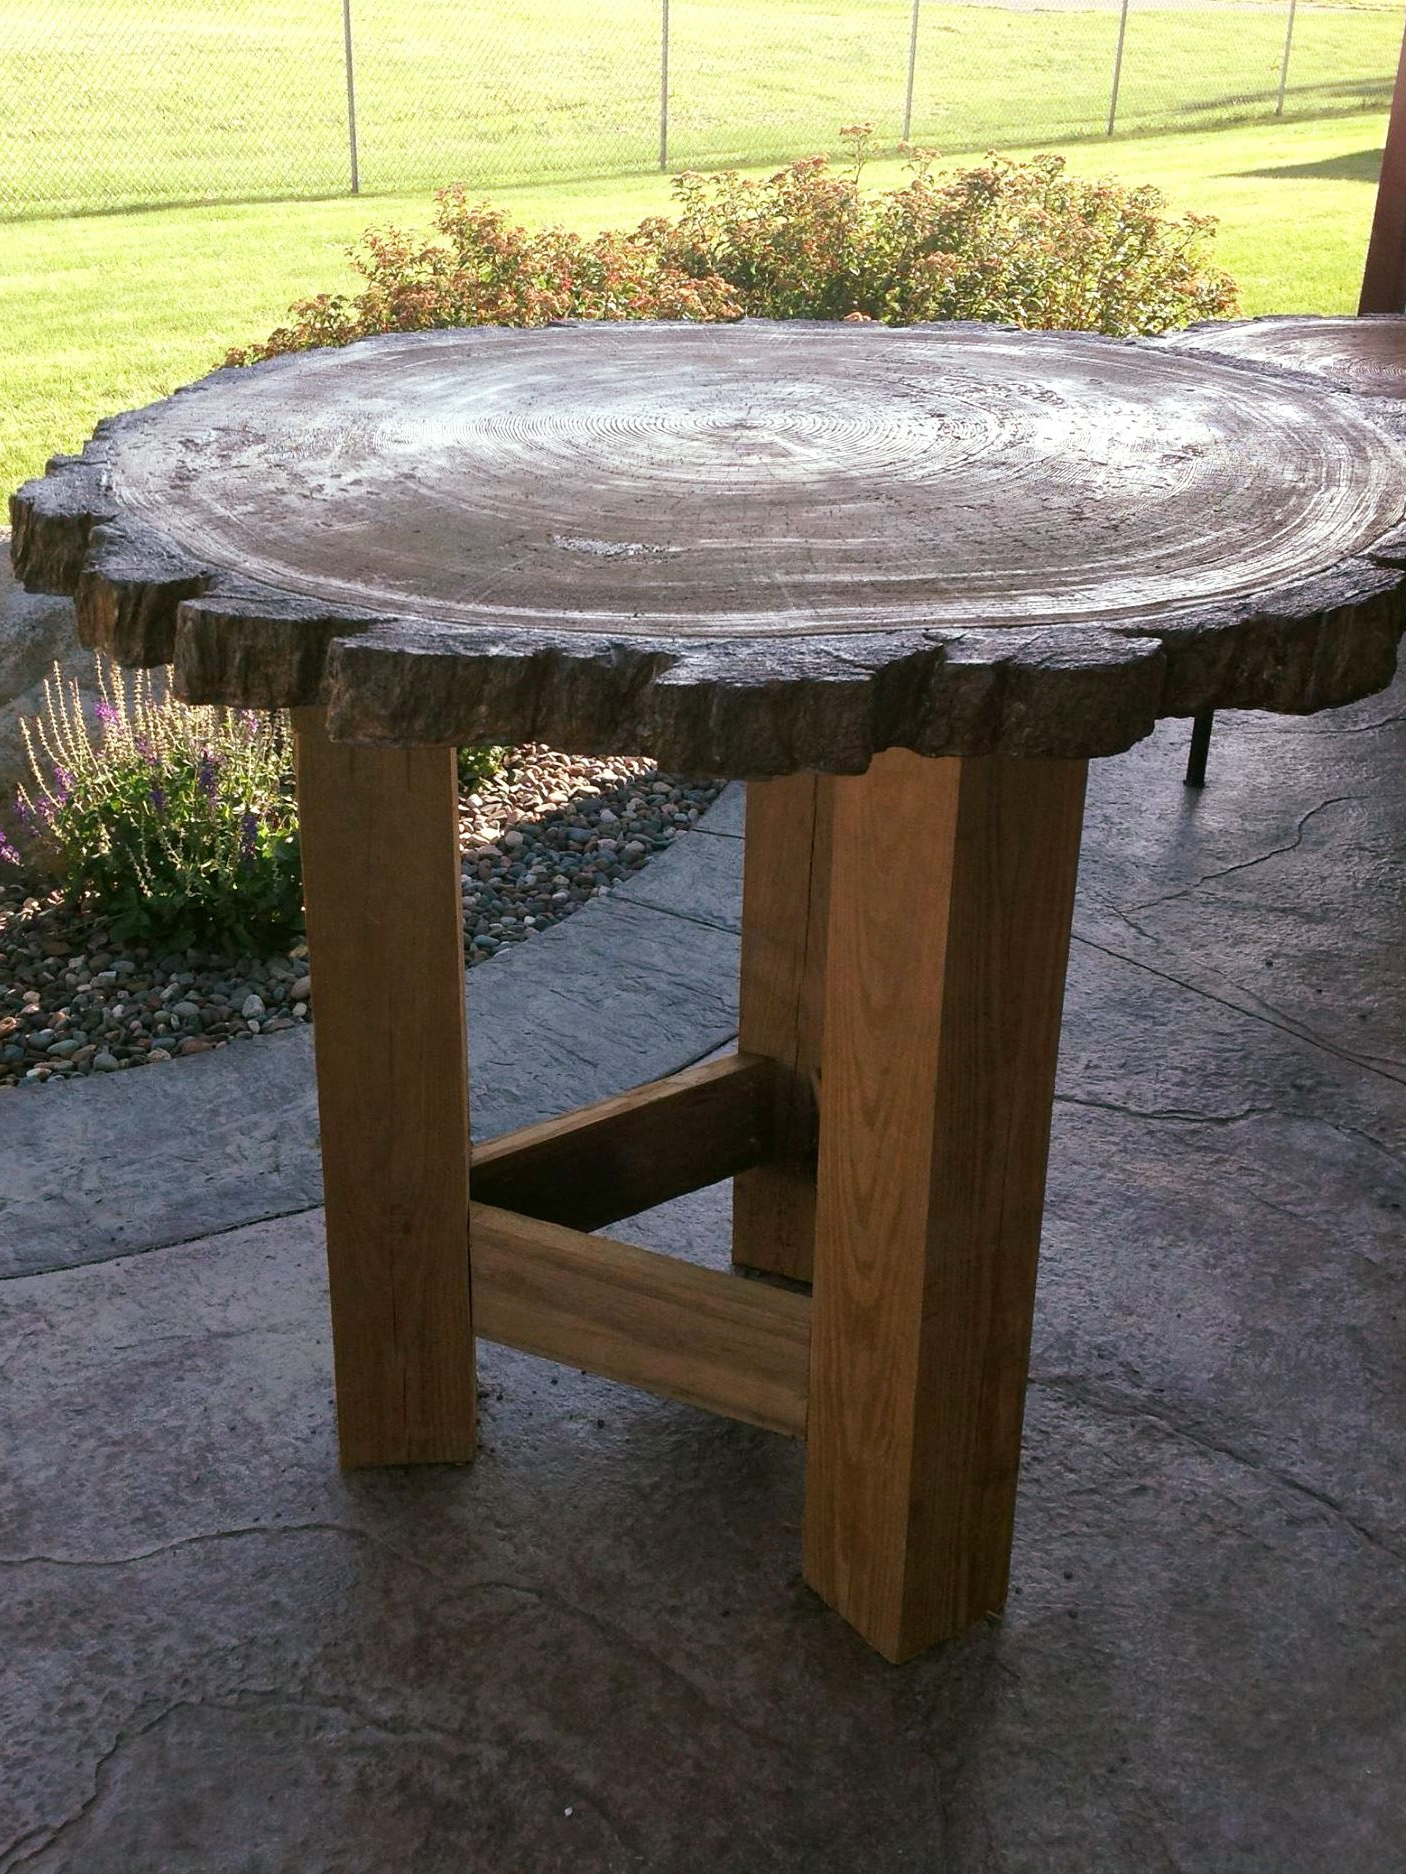 jsgc_concrete-table-2.jpg